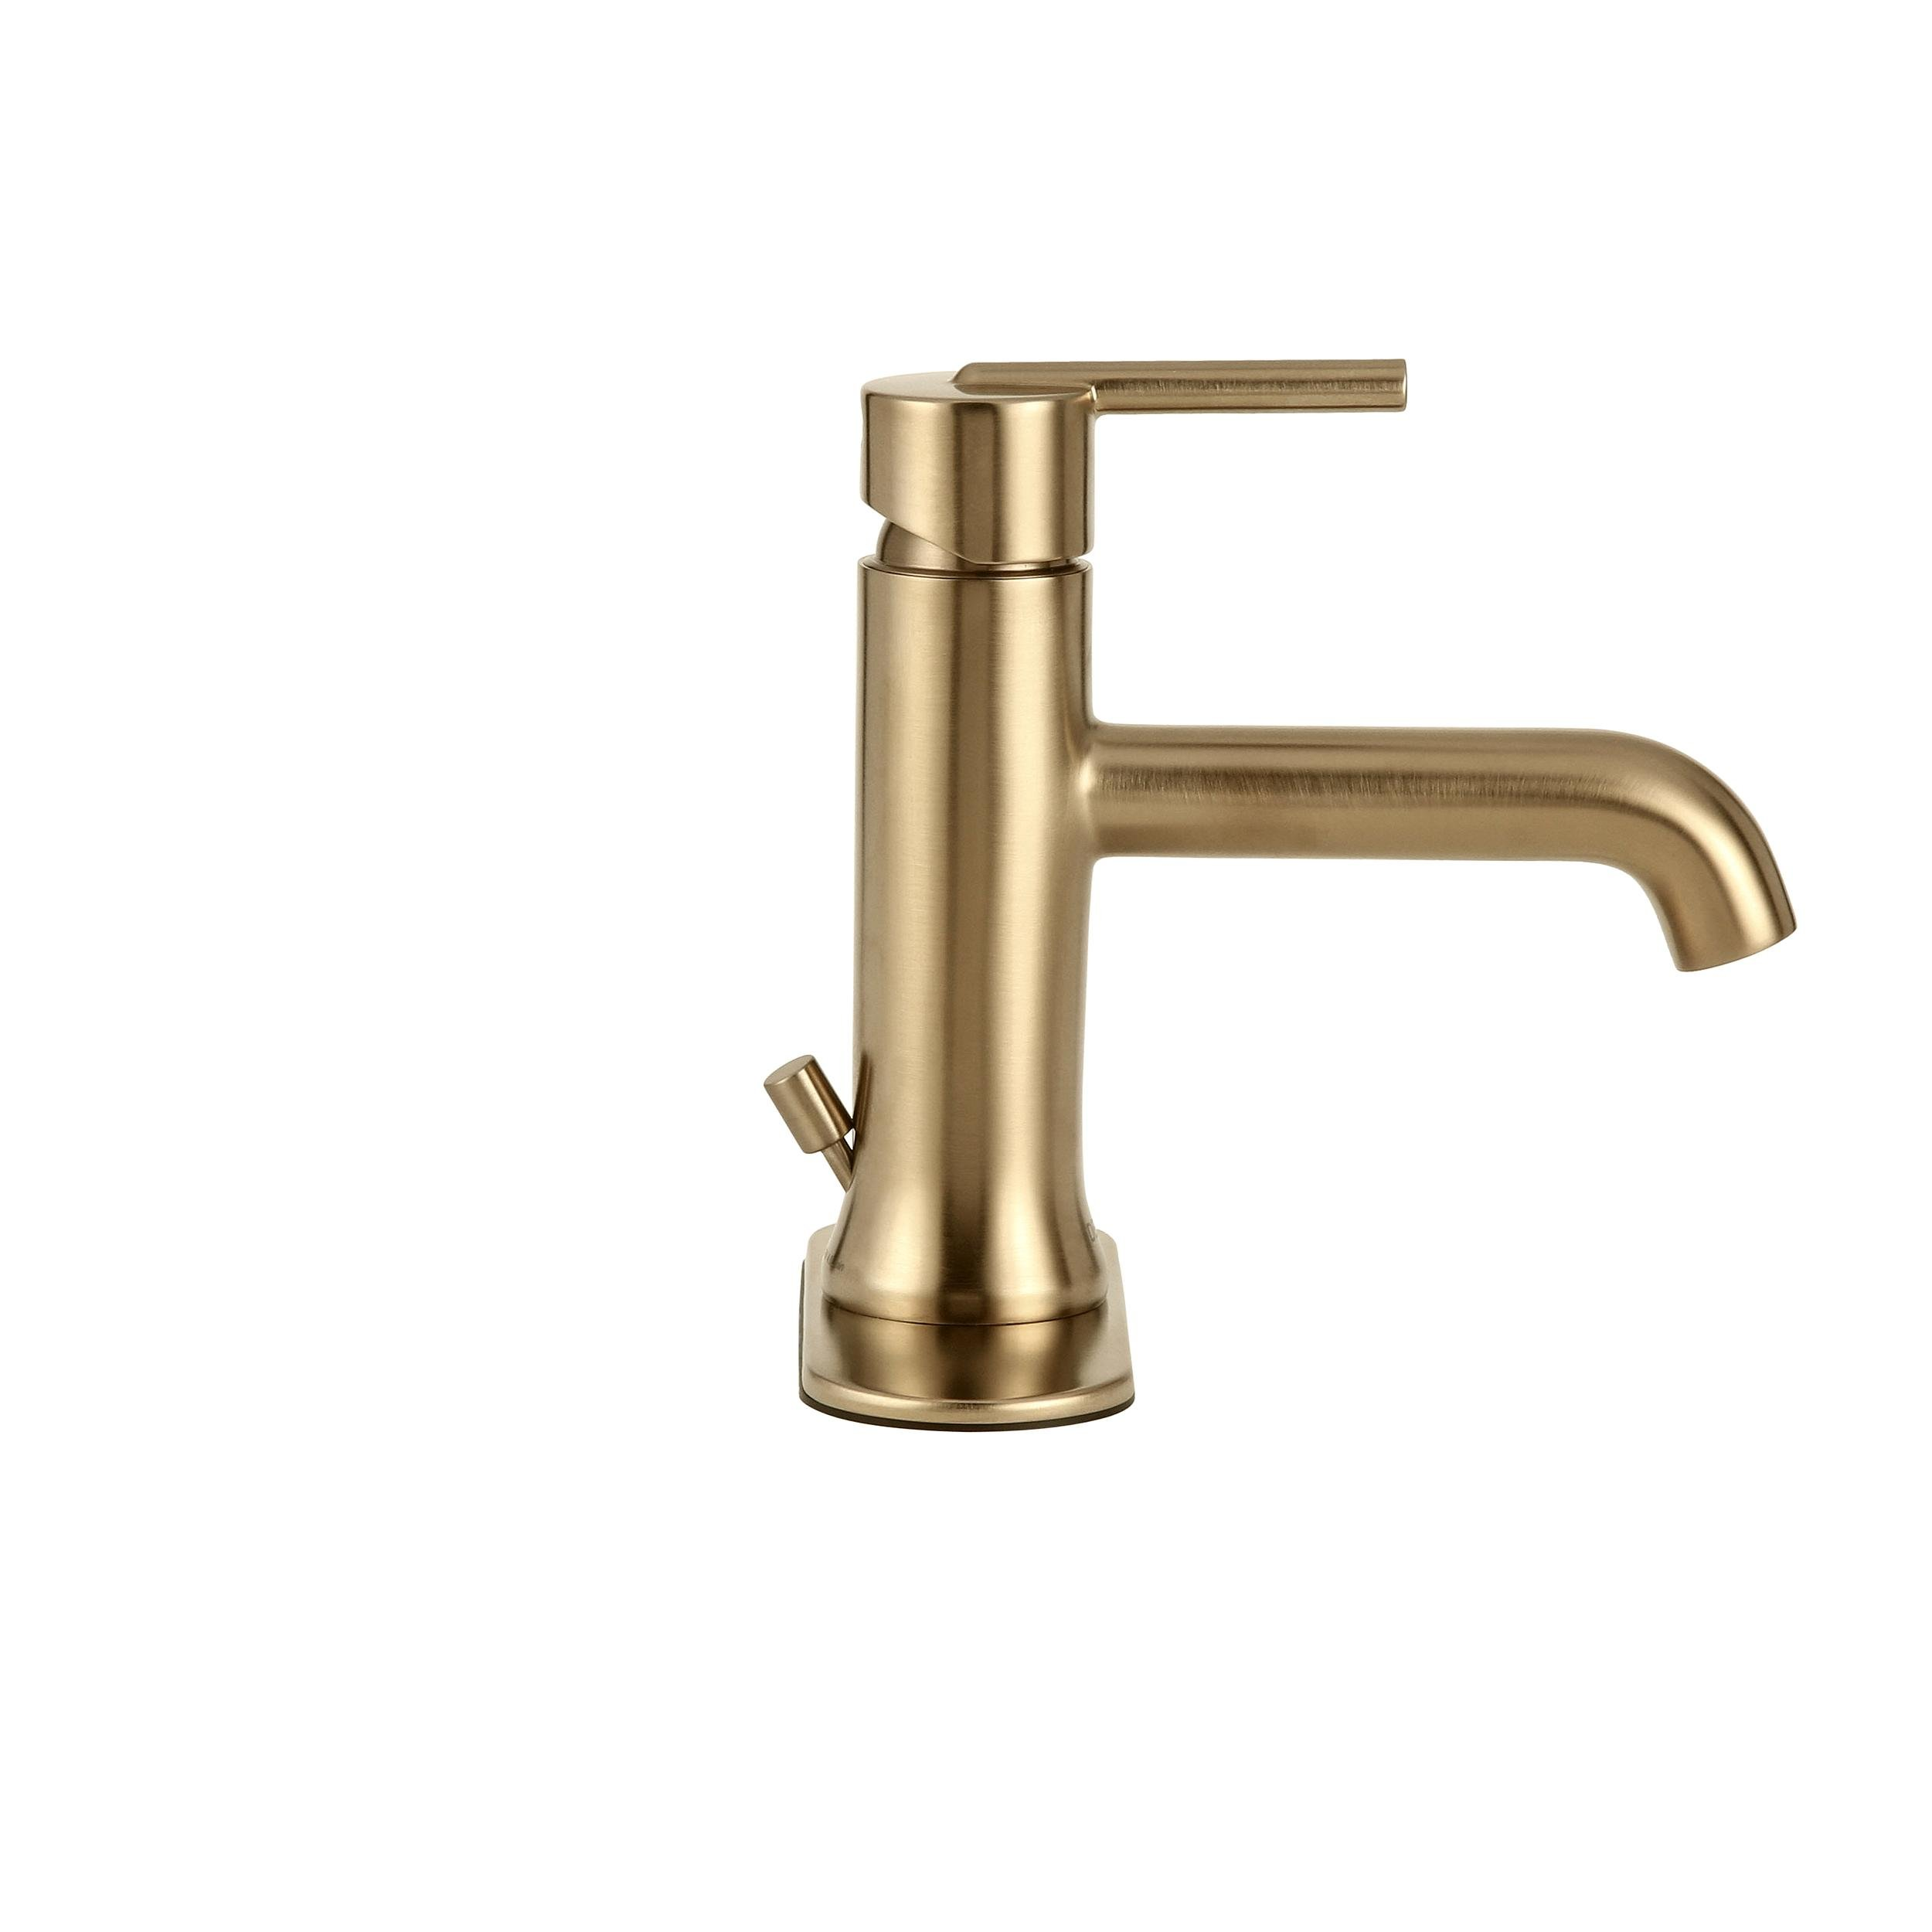 Delta Faucet 559LF-CZMPU Trinsic, Single Hole-Single Handle, 4-Inch plate/metal pop-up, Champagne Bronze by DELTA FAUCET